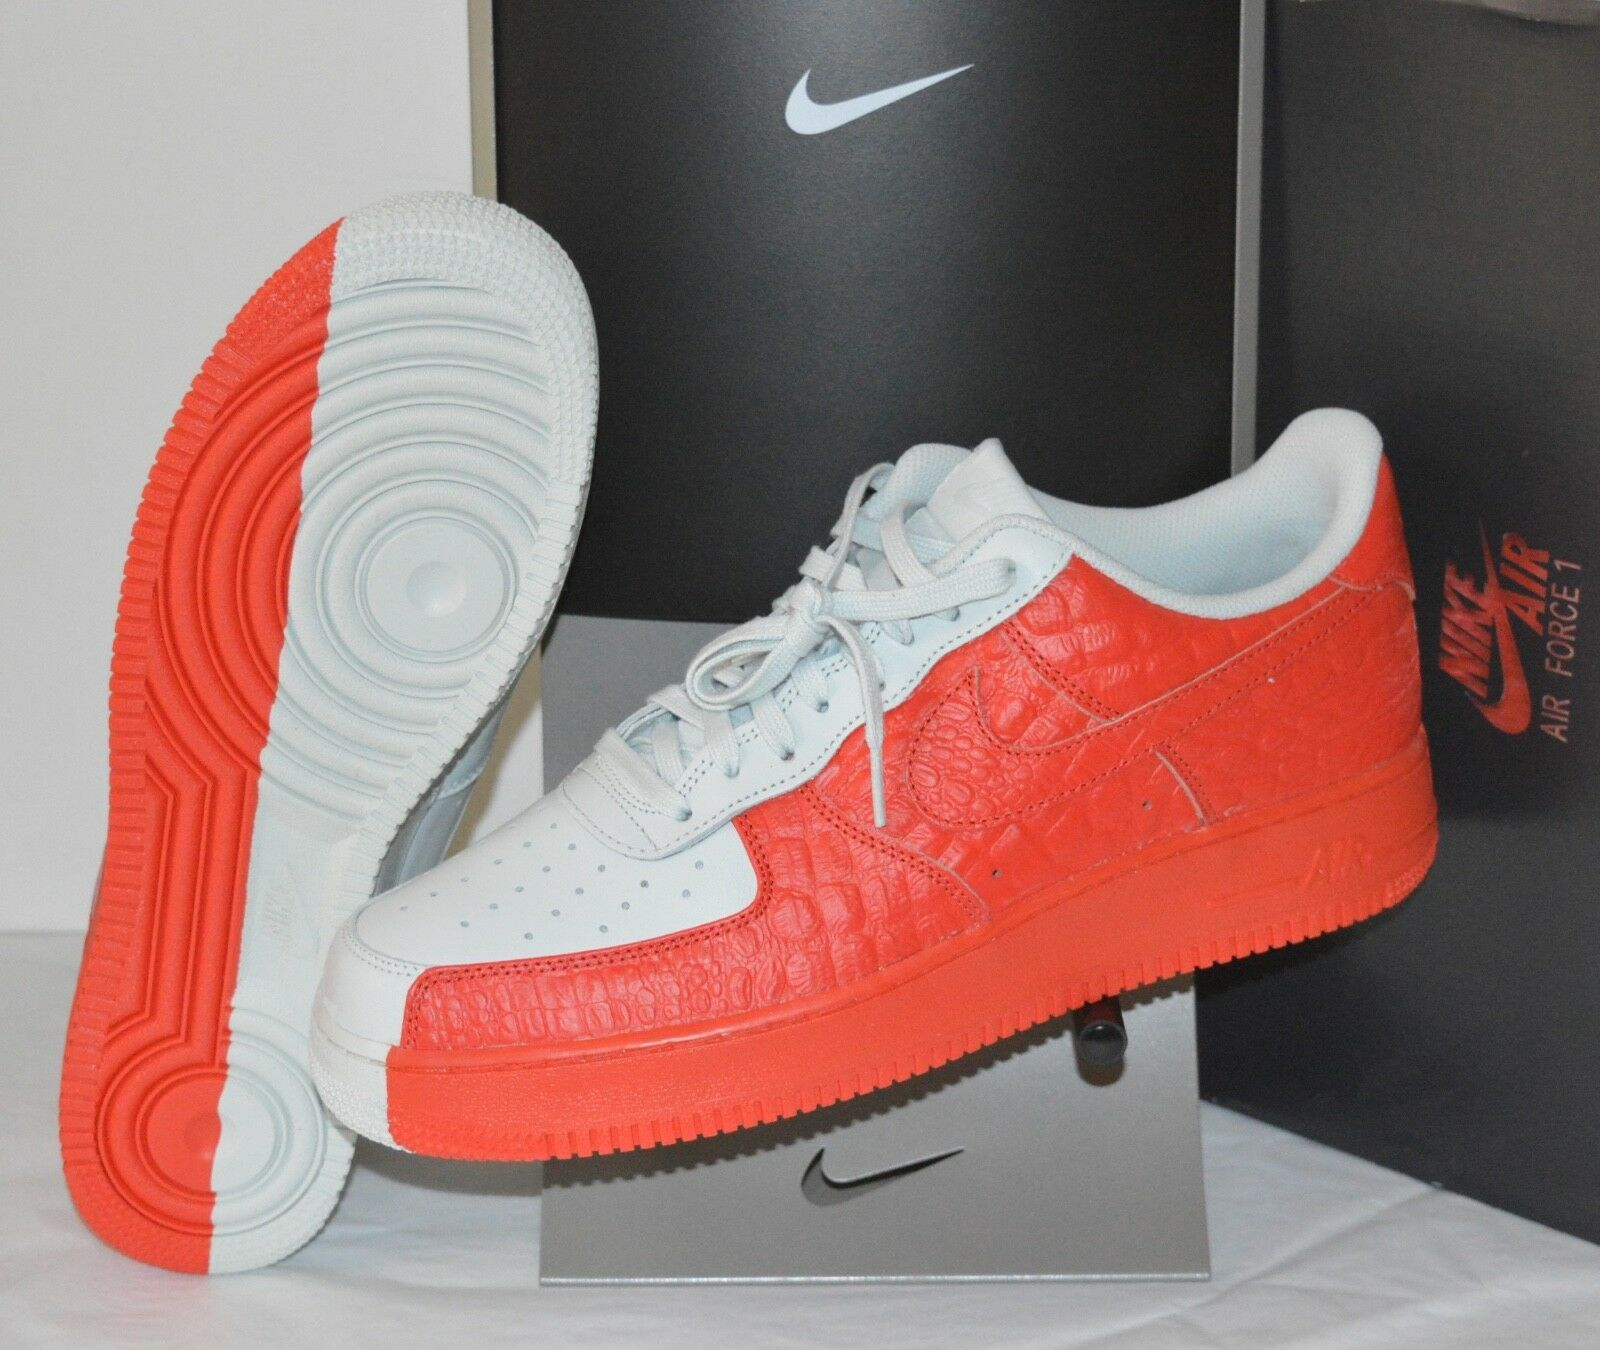 New Nike Air Force 1 '07 PRM Barely Grey/Habanero Red Split Price reduction Special limited time